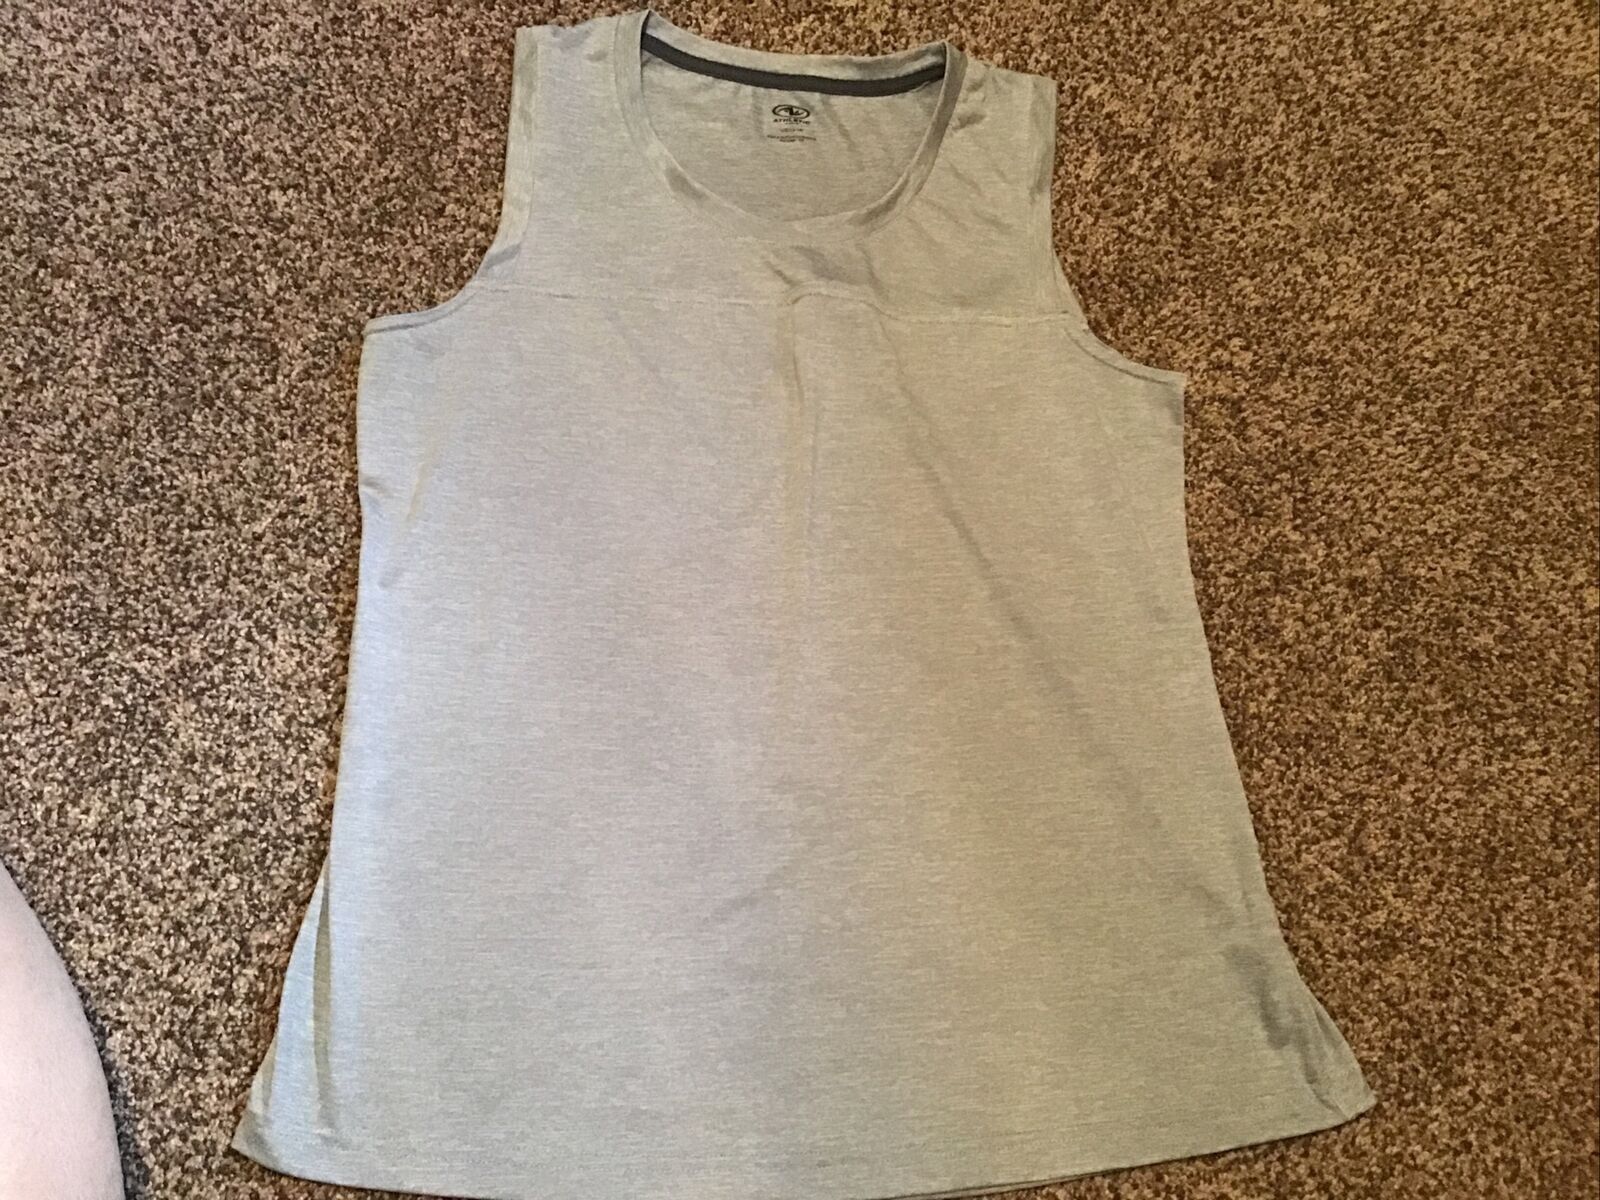 ATHLETIC WORKS Women's Tank Top Size L (12-14) Gray Running Gym Workout Casual